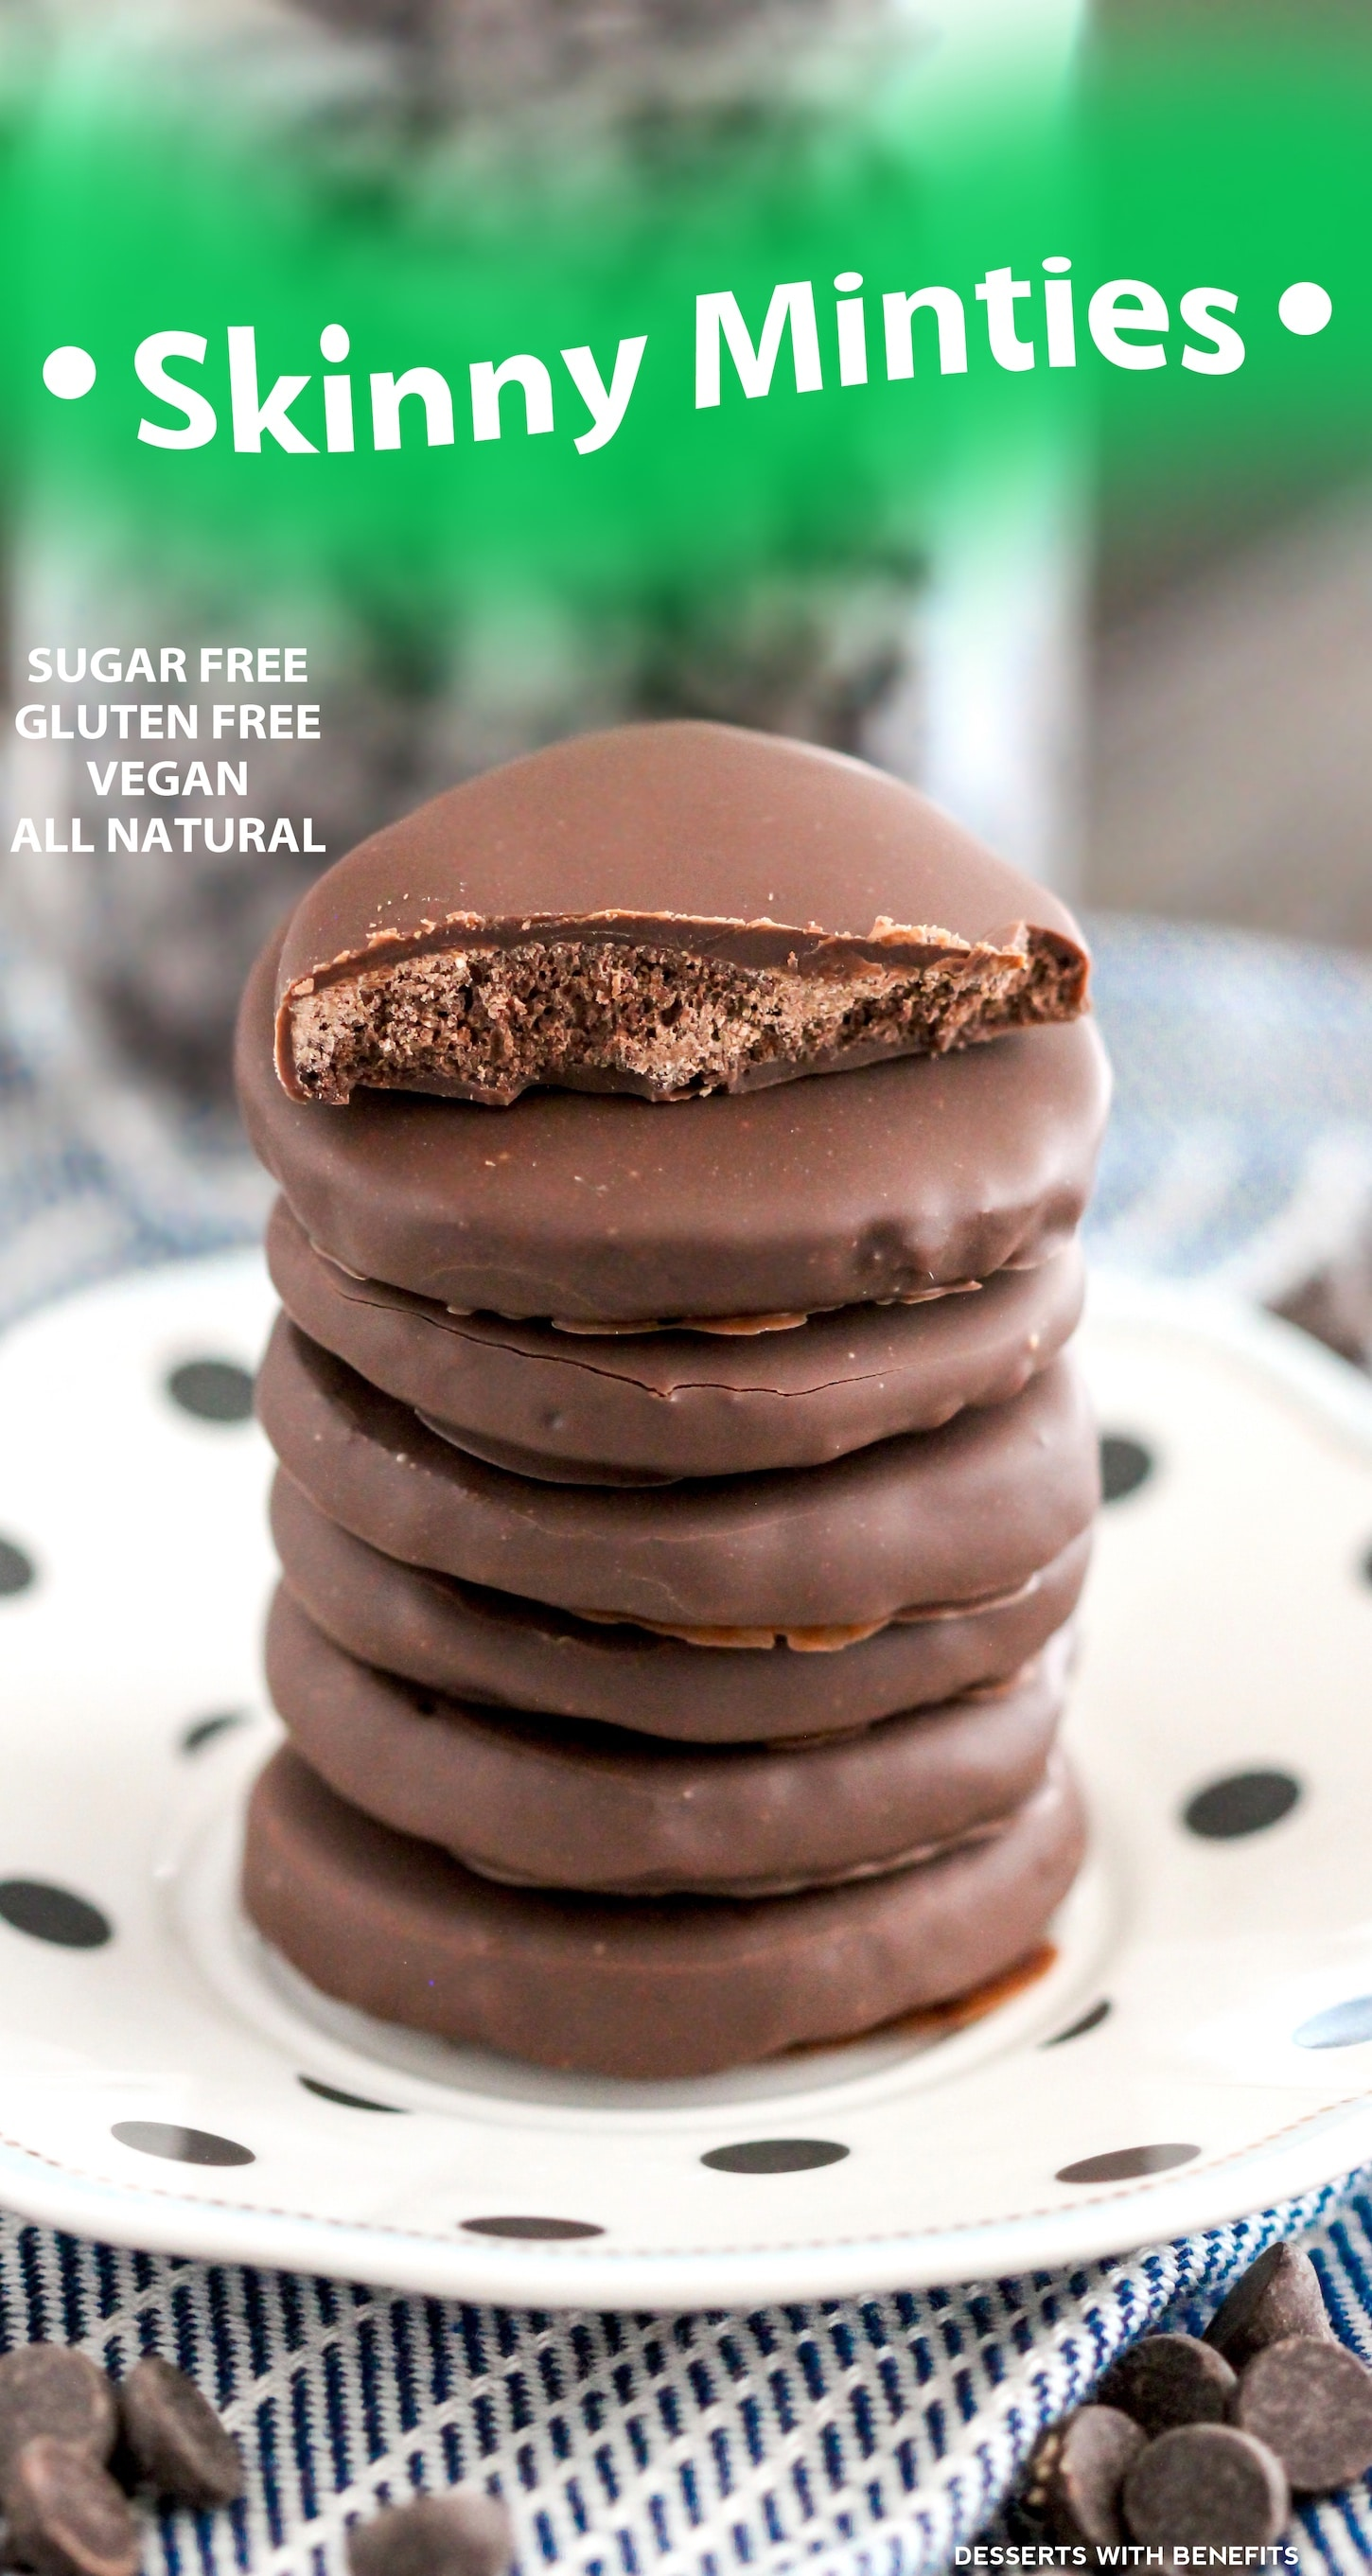 Healthy Homemade Thin Mints recipe (refined sugar free, gluten free, dairy free, vegan) - Healthy Dessert Recipes at Desserts with Benefits